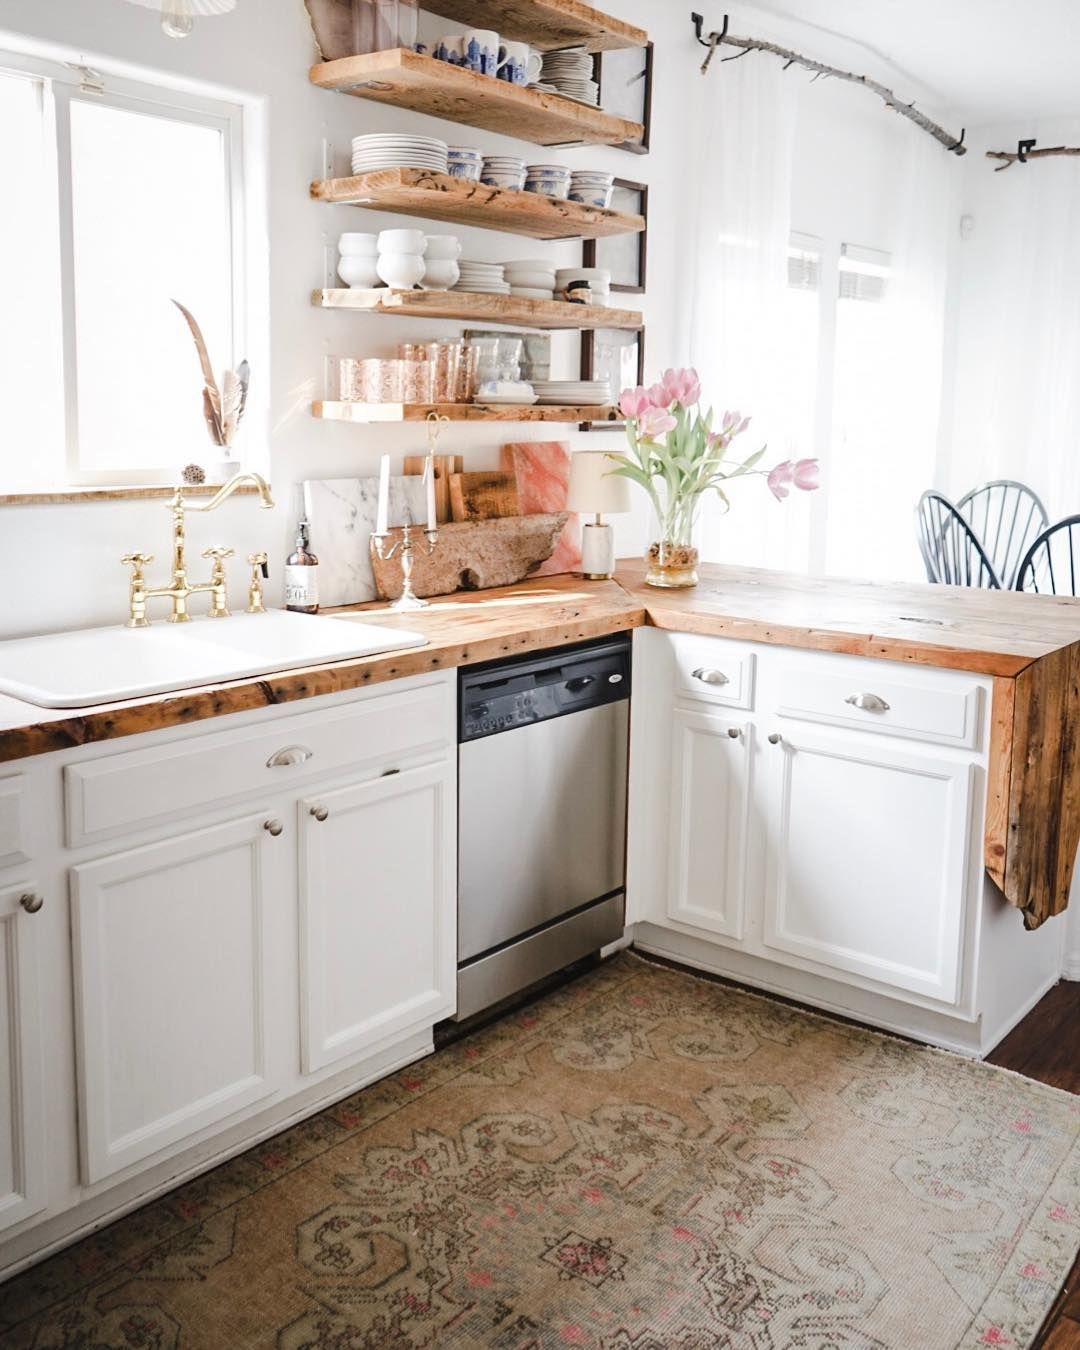 Bright Cozy And Charming All In One See More On Nichol Naranjo S Instagram Nicholnaranjo Home Kitchens Kitchen Design Small Kitchen Remodel